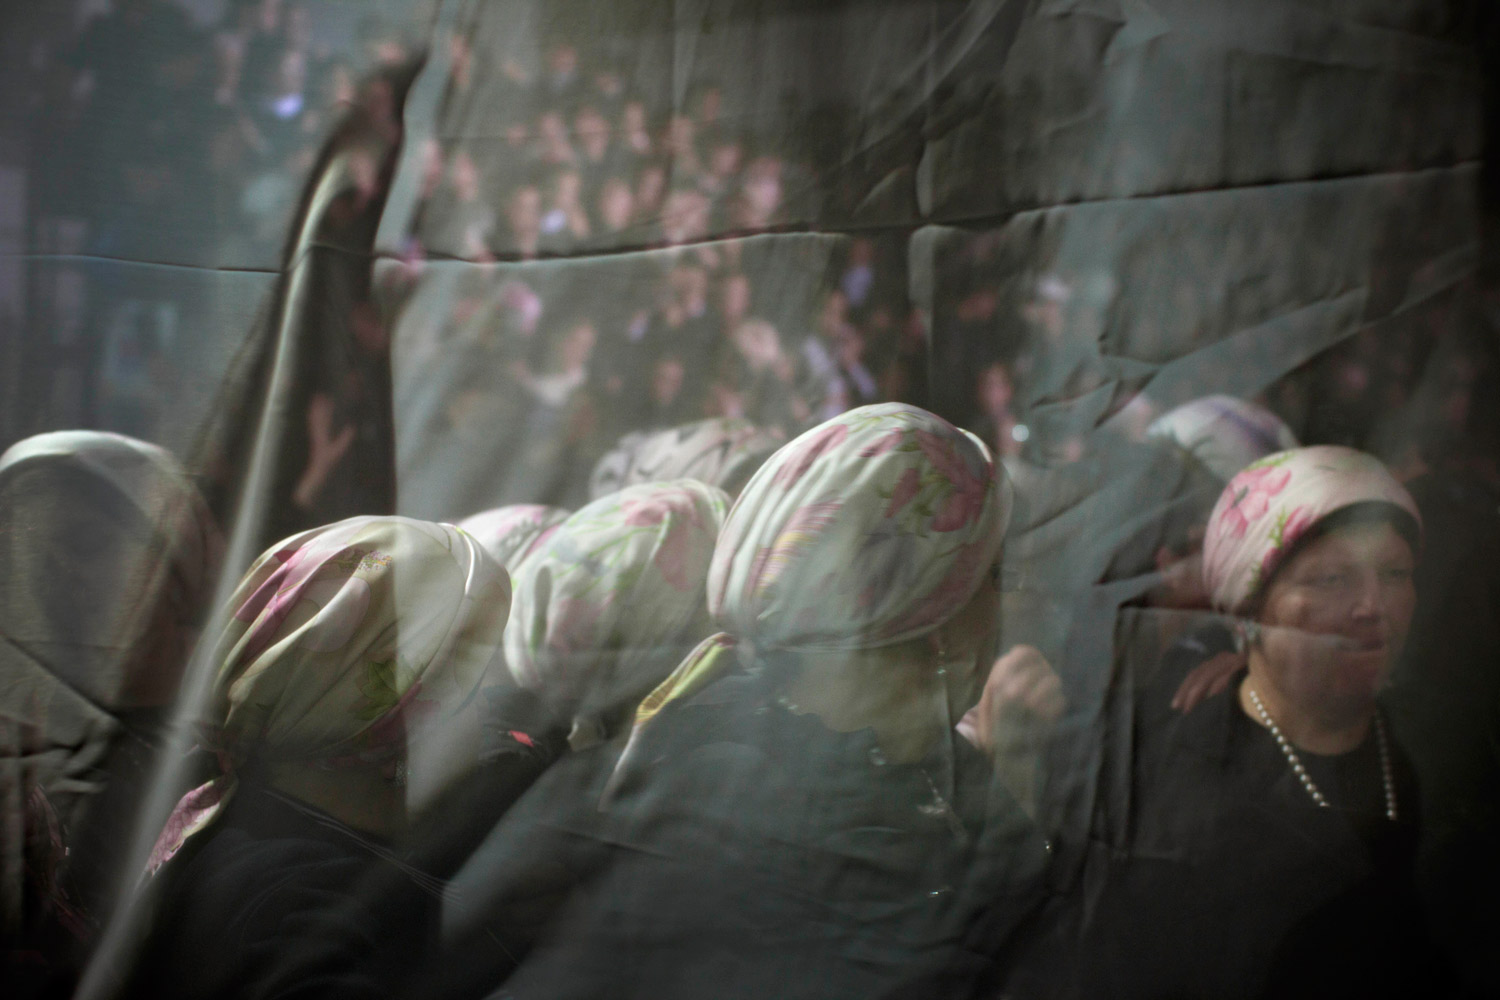 Feb. 14, 2012. Ultra-Orthodox Jewish women are seen behind a curtain during a traditional Jewish wedding for Chananya Yom Tov Lipa, the great-grandson of the Rabbi of the Wiznitz Hasidic followers, in the Israeli town of Petah Tikva near Tel Aviv, Israel.